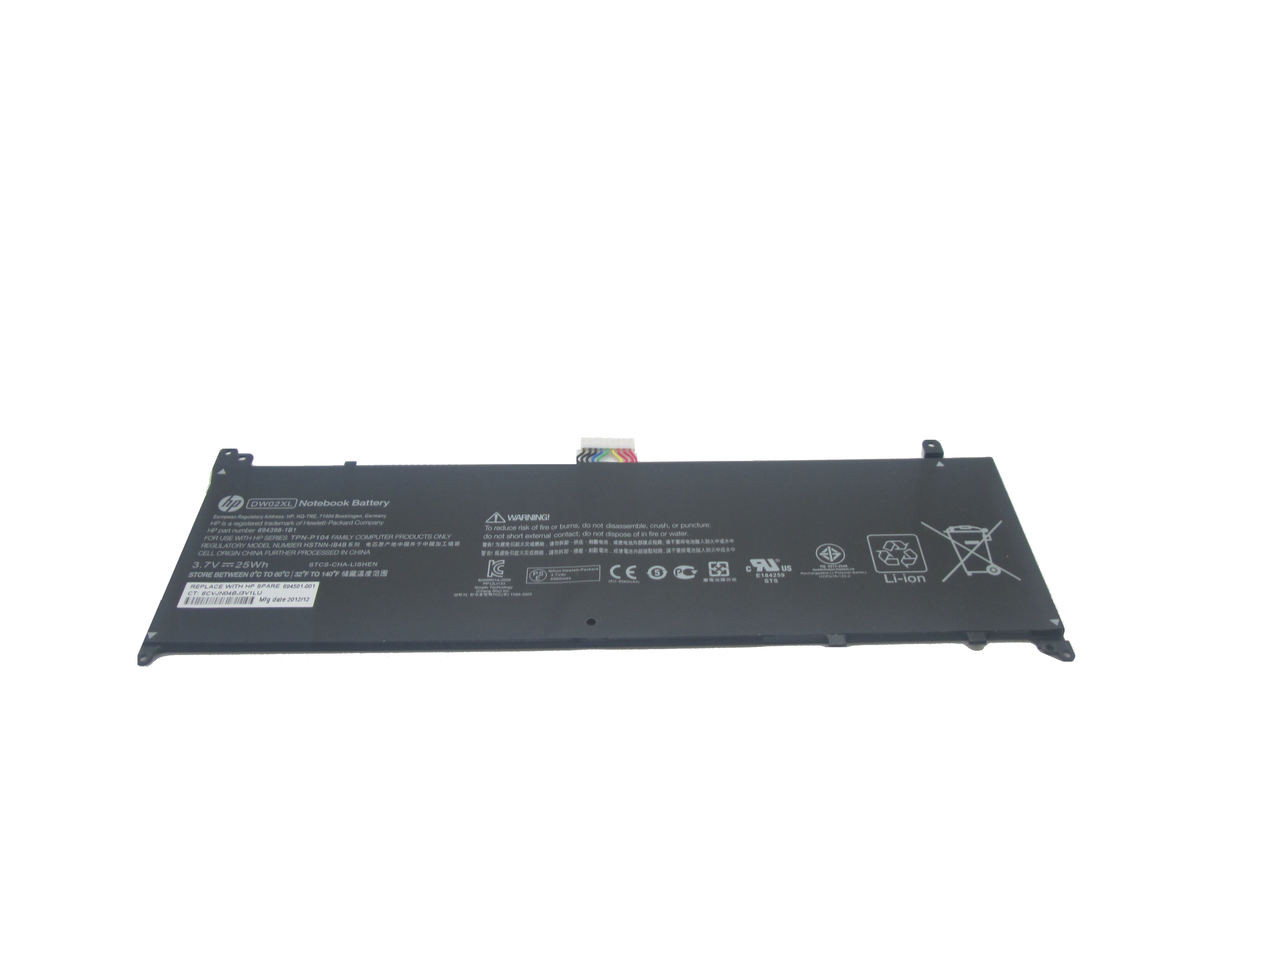 HP ENVY x2 11-g050br Driver for Windows 10